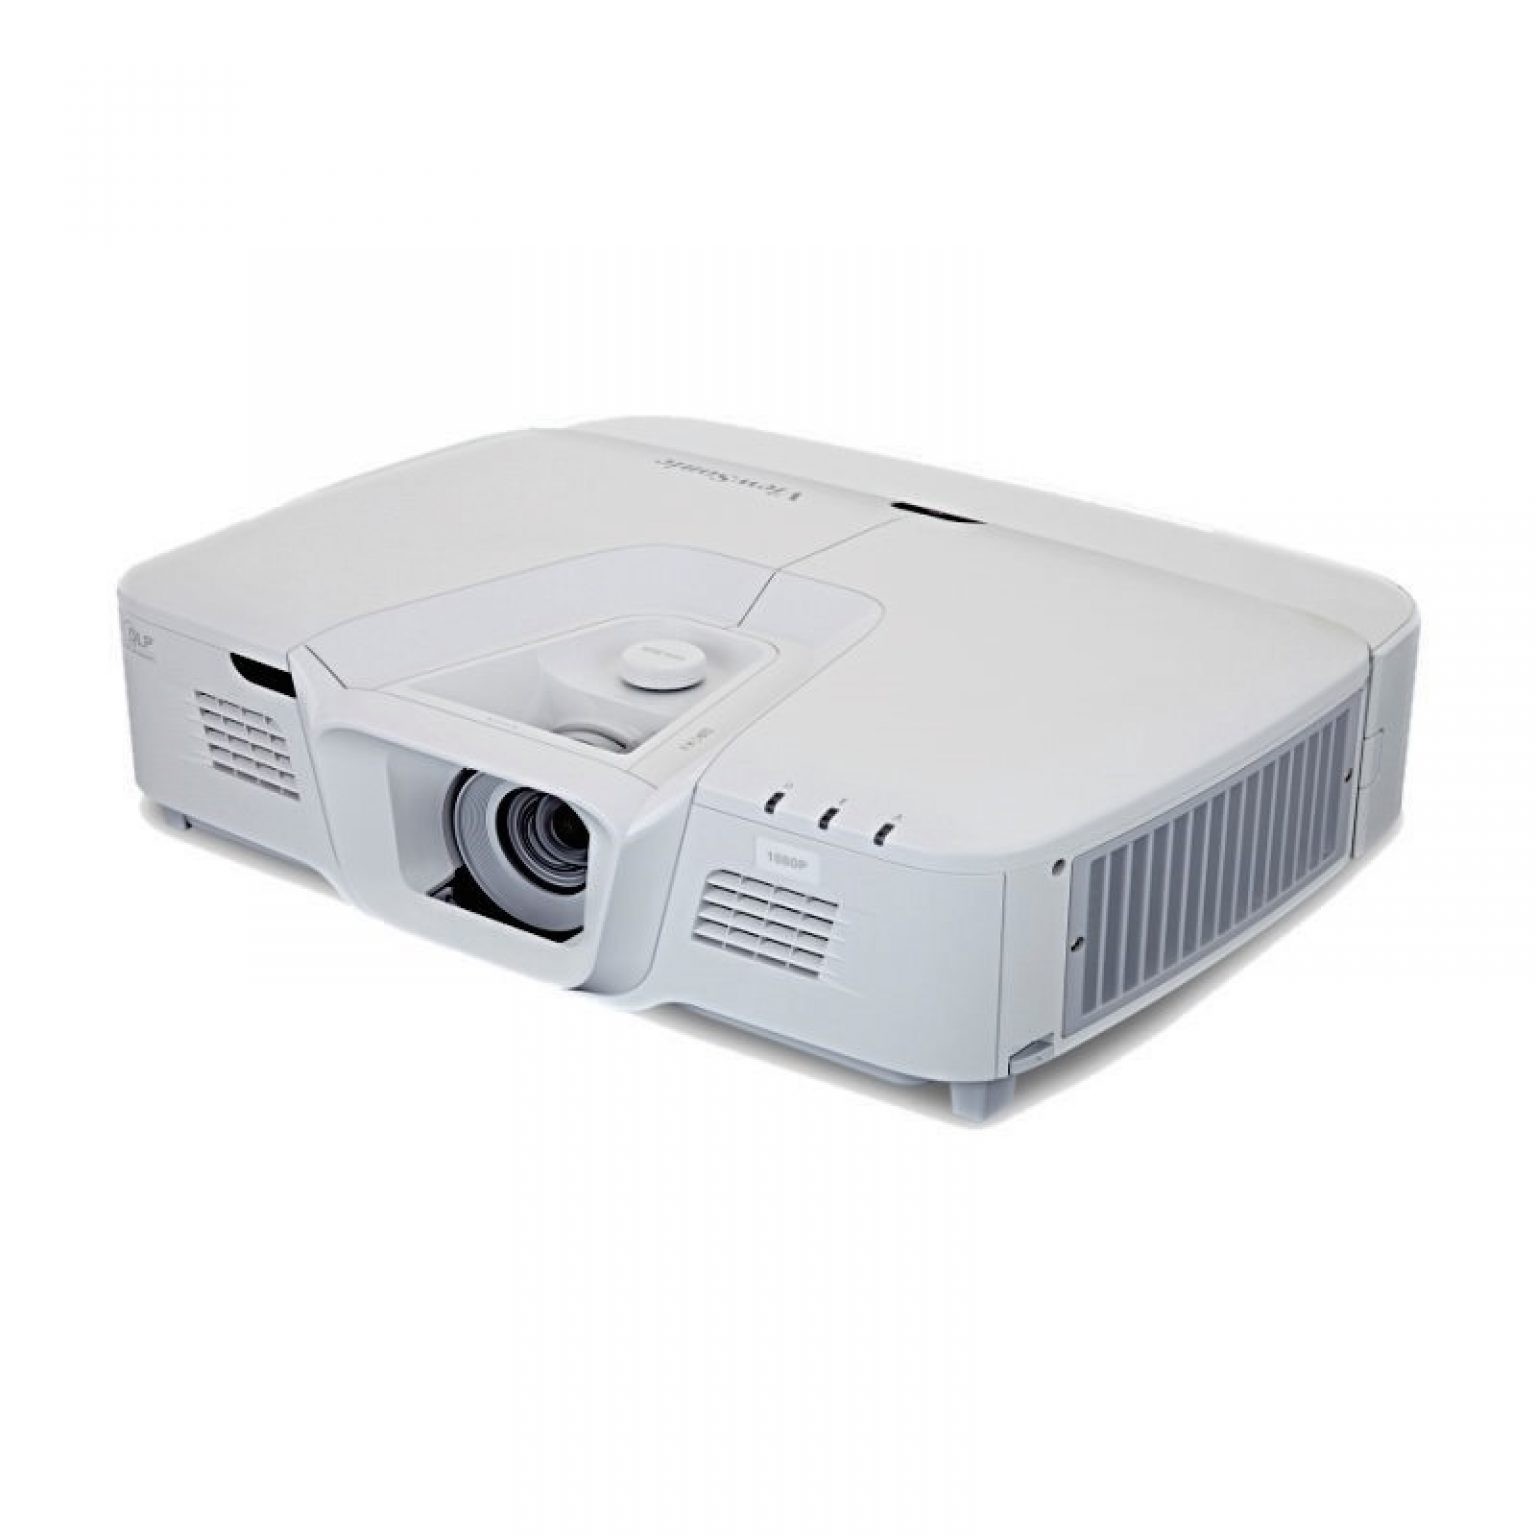 VIEWSONIC - Projector PRO8530HDL